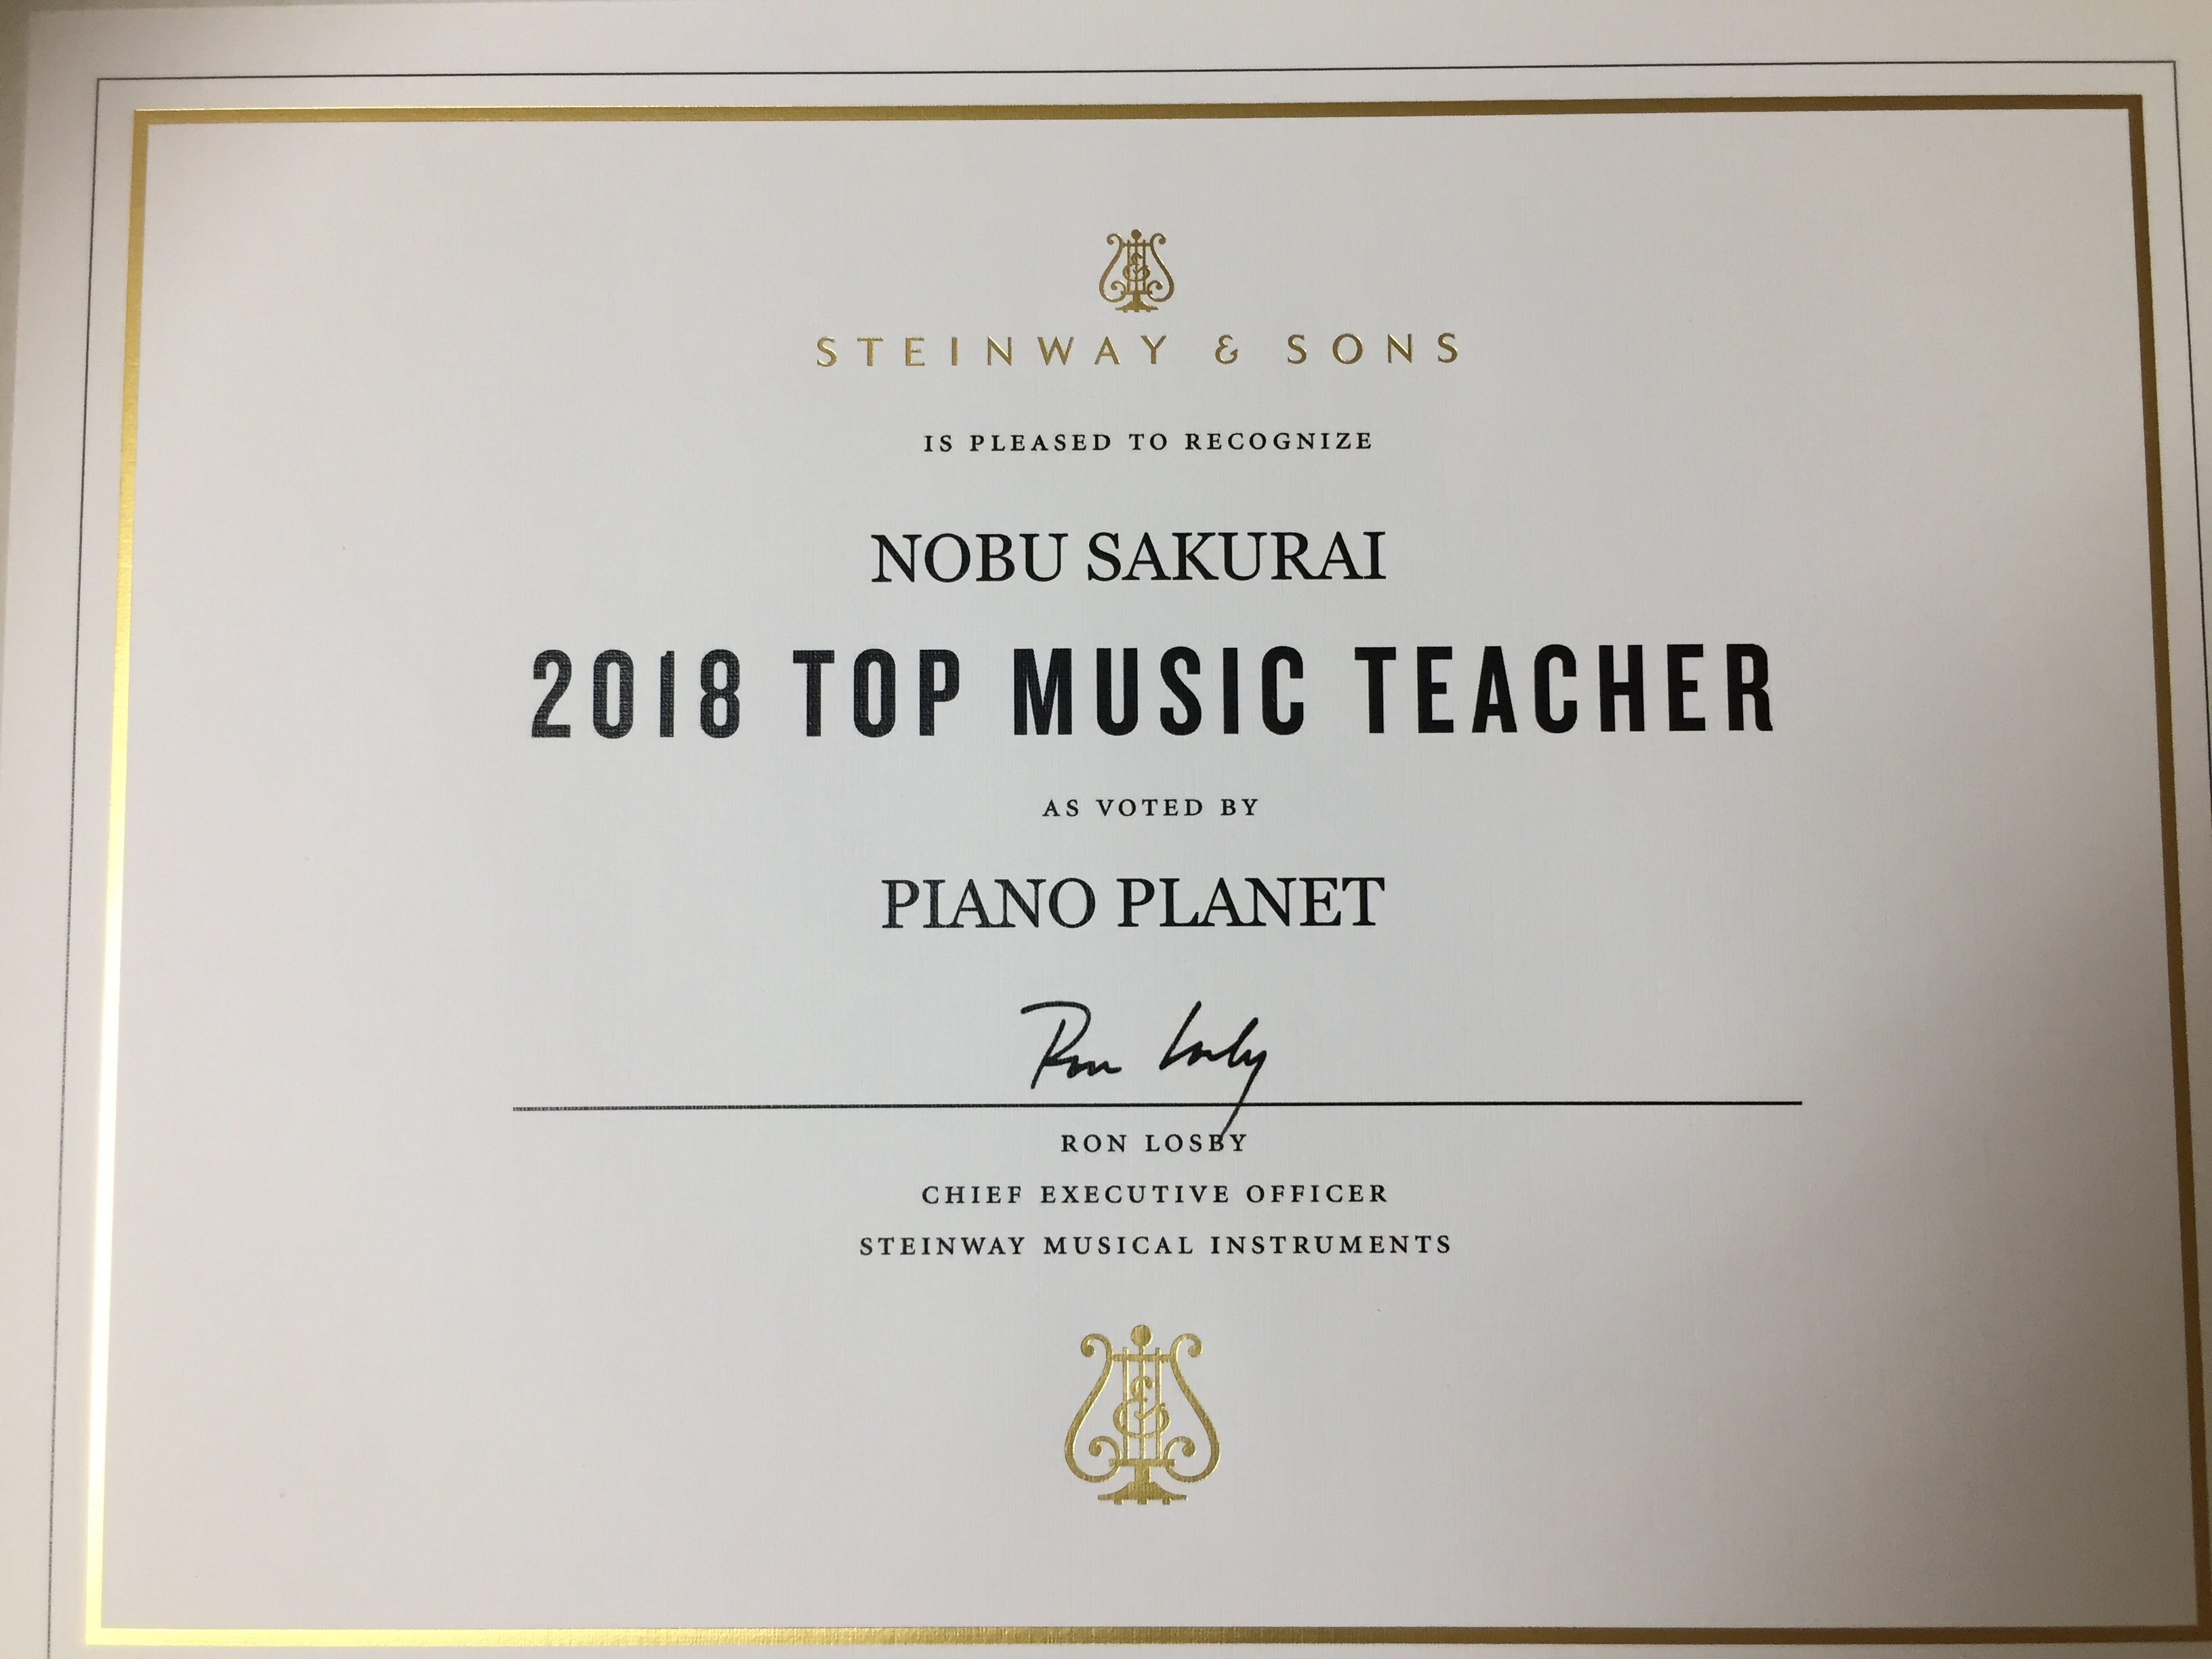 Top Piano Studio 2018 Award!